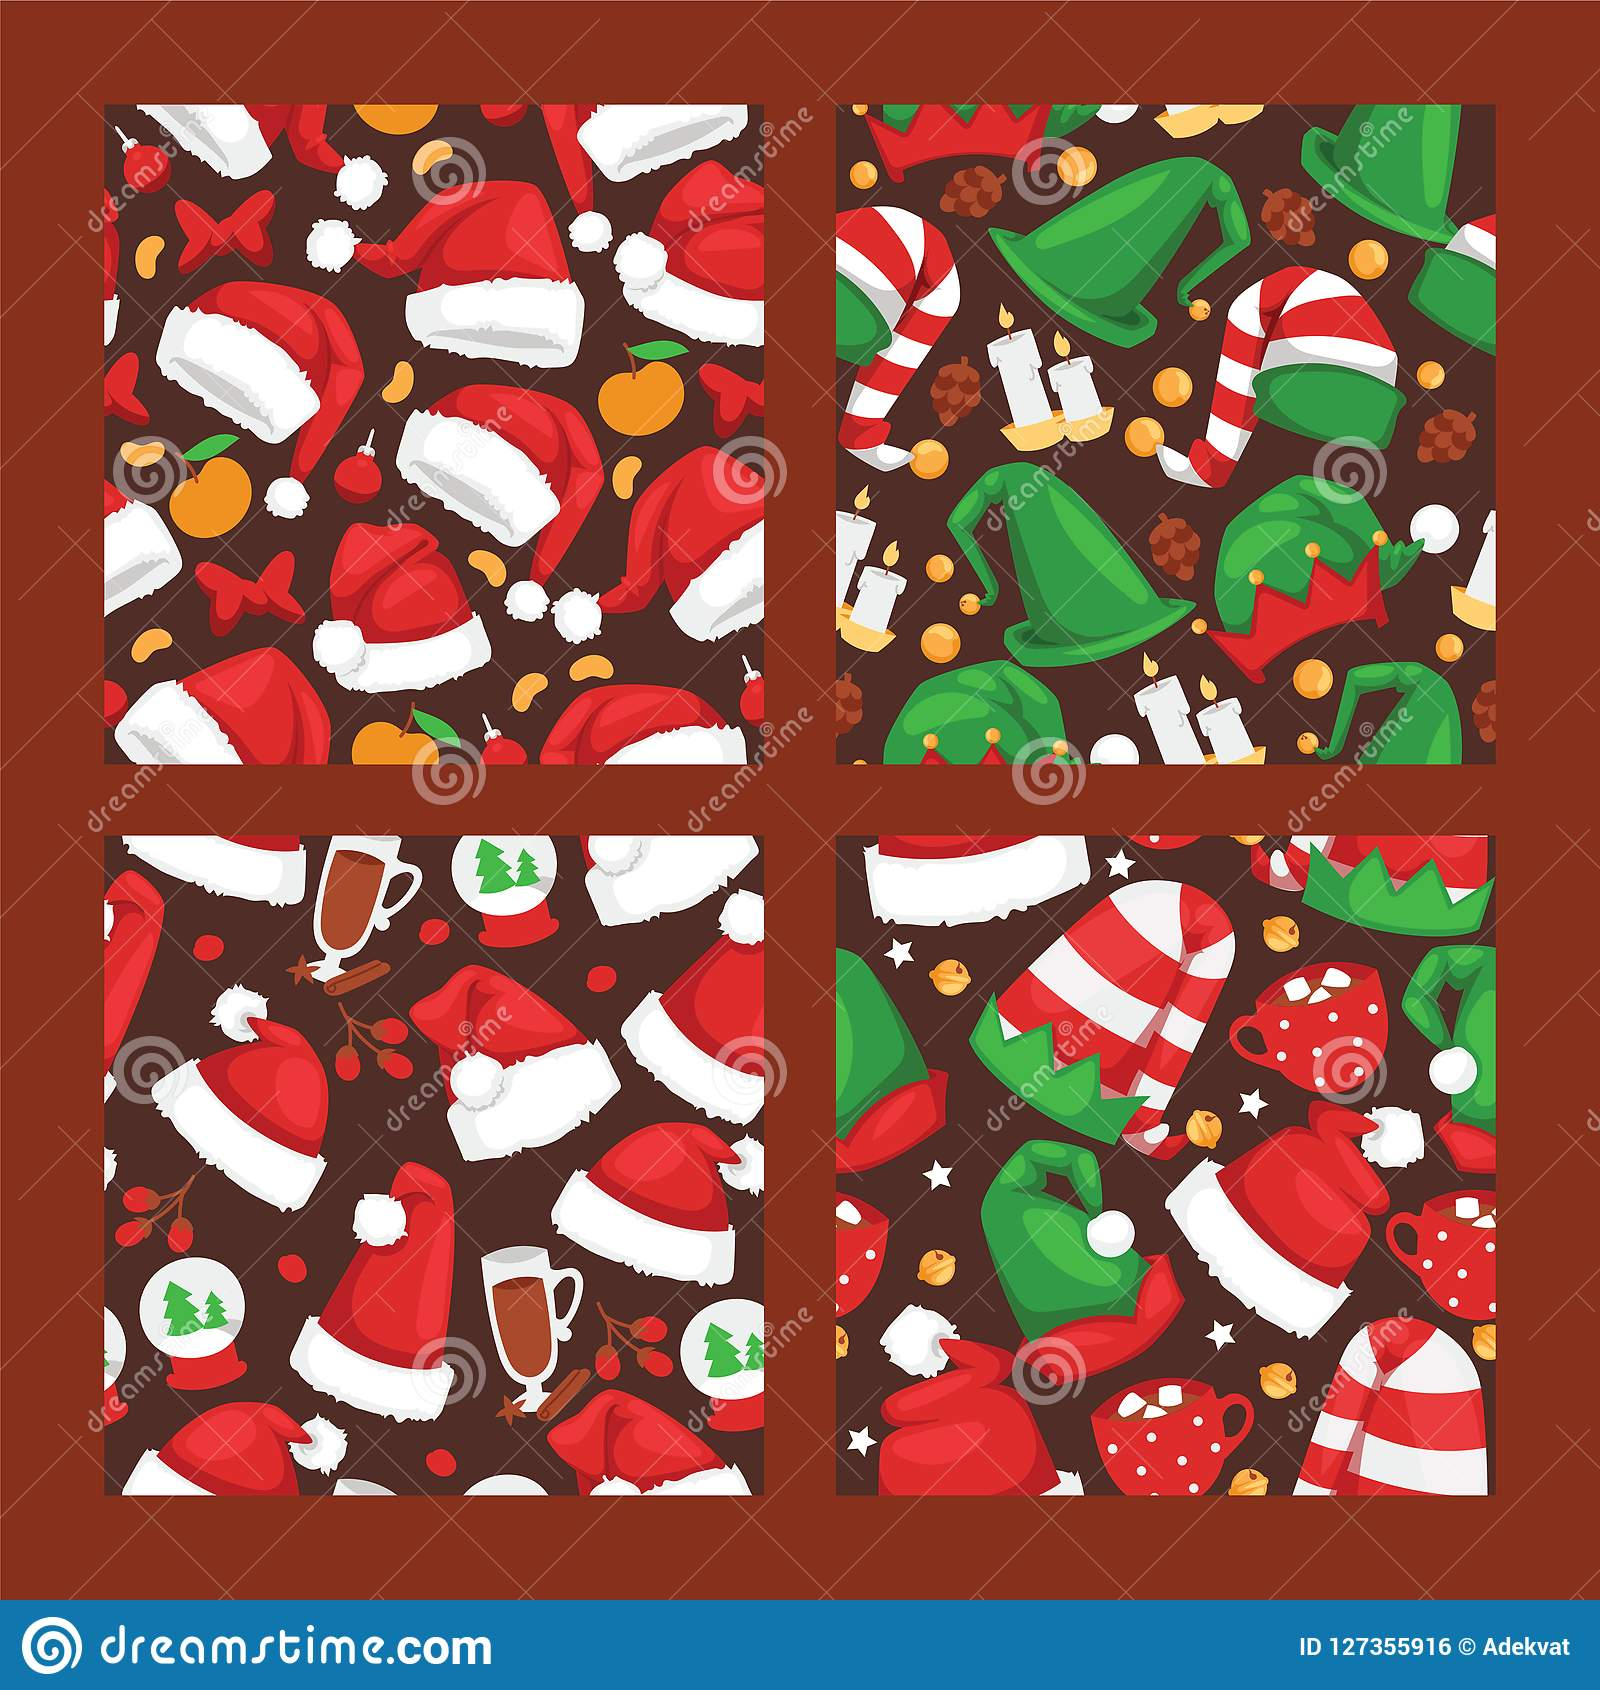 Christmas Santa Claus red hat vector noel seamlesss pattern background illustration New Year Christians Xmas party